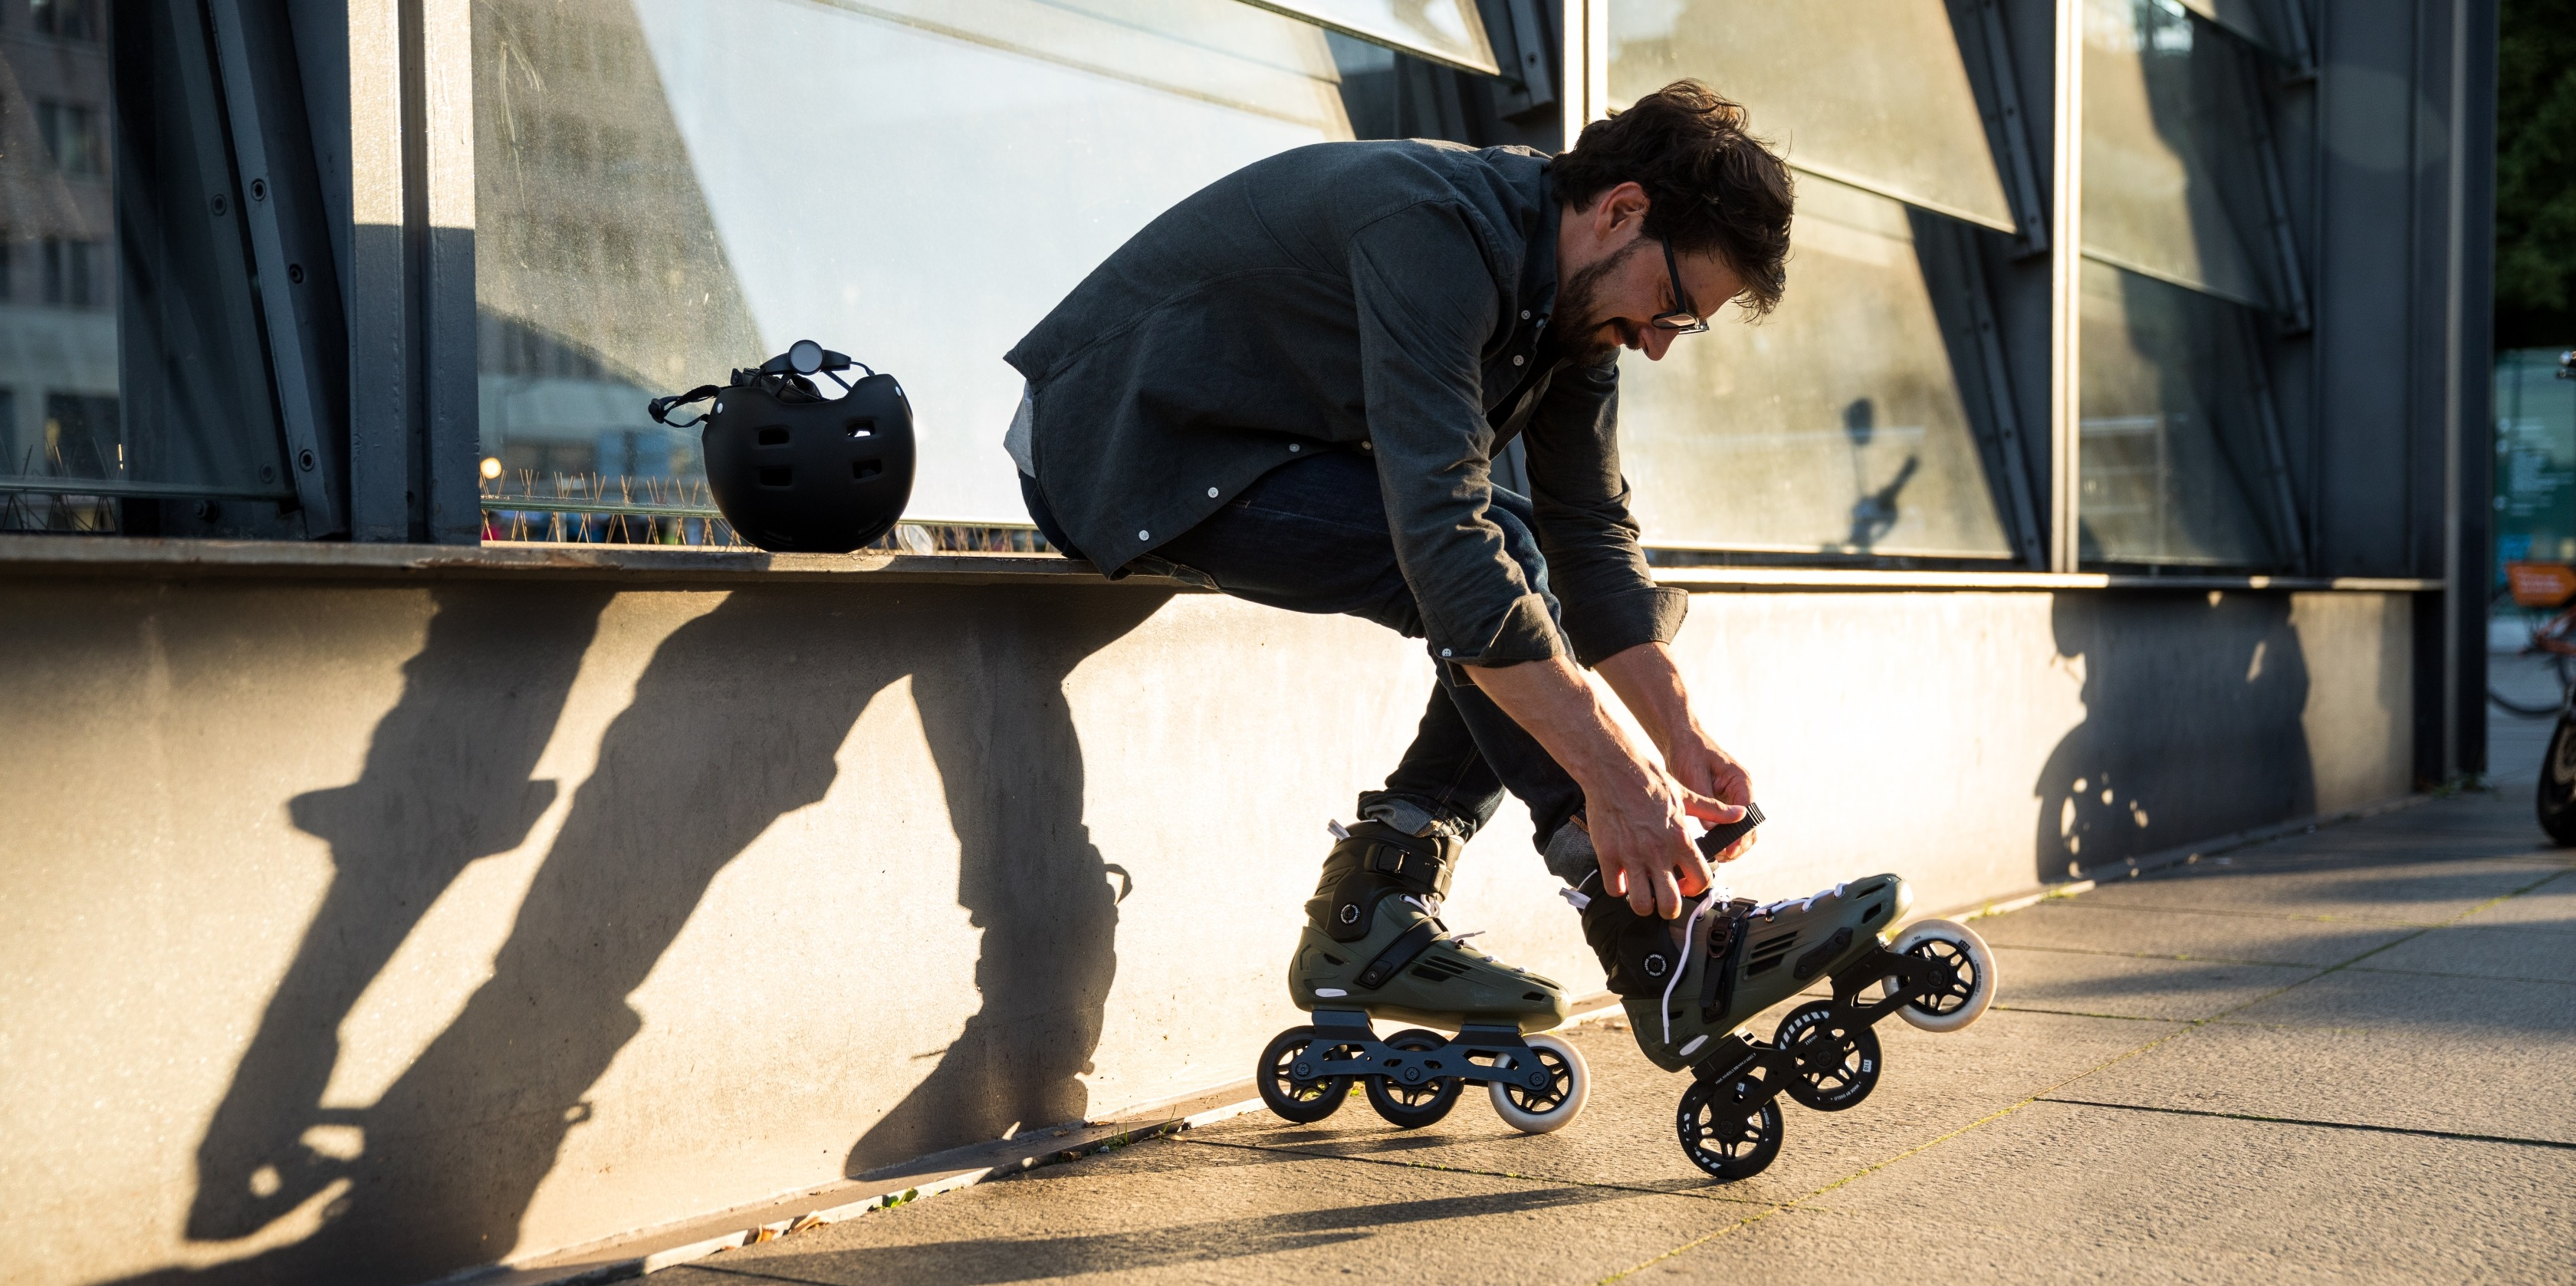 In-line Skating For Beginners - What Kit Do I Need?